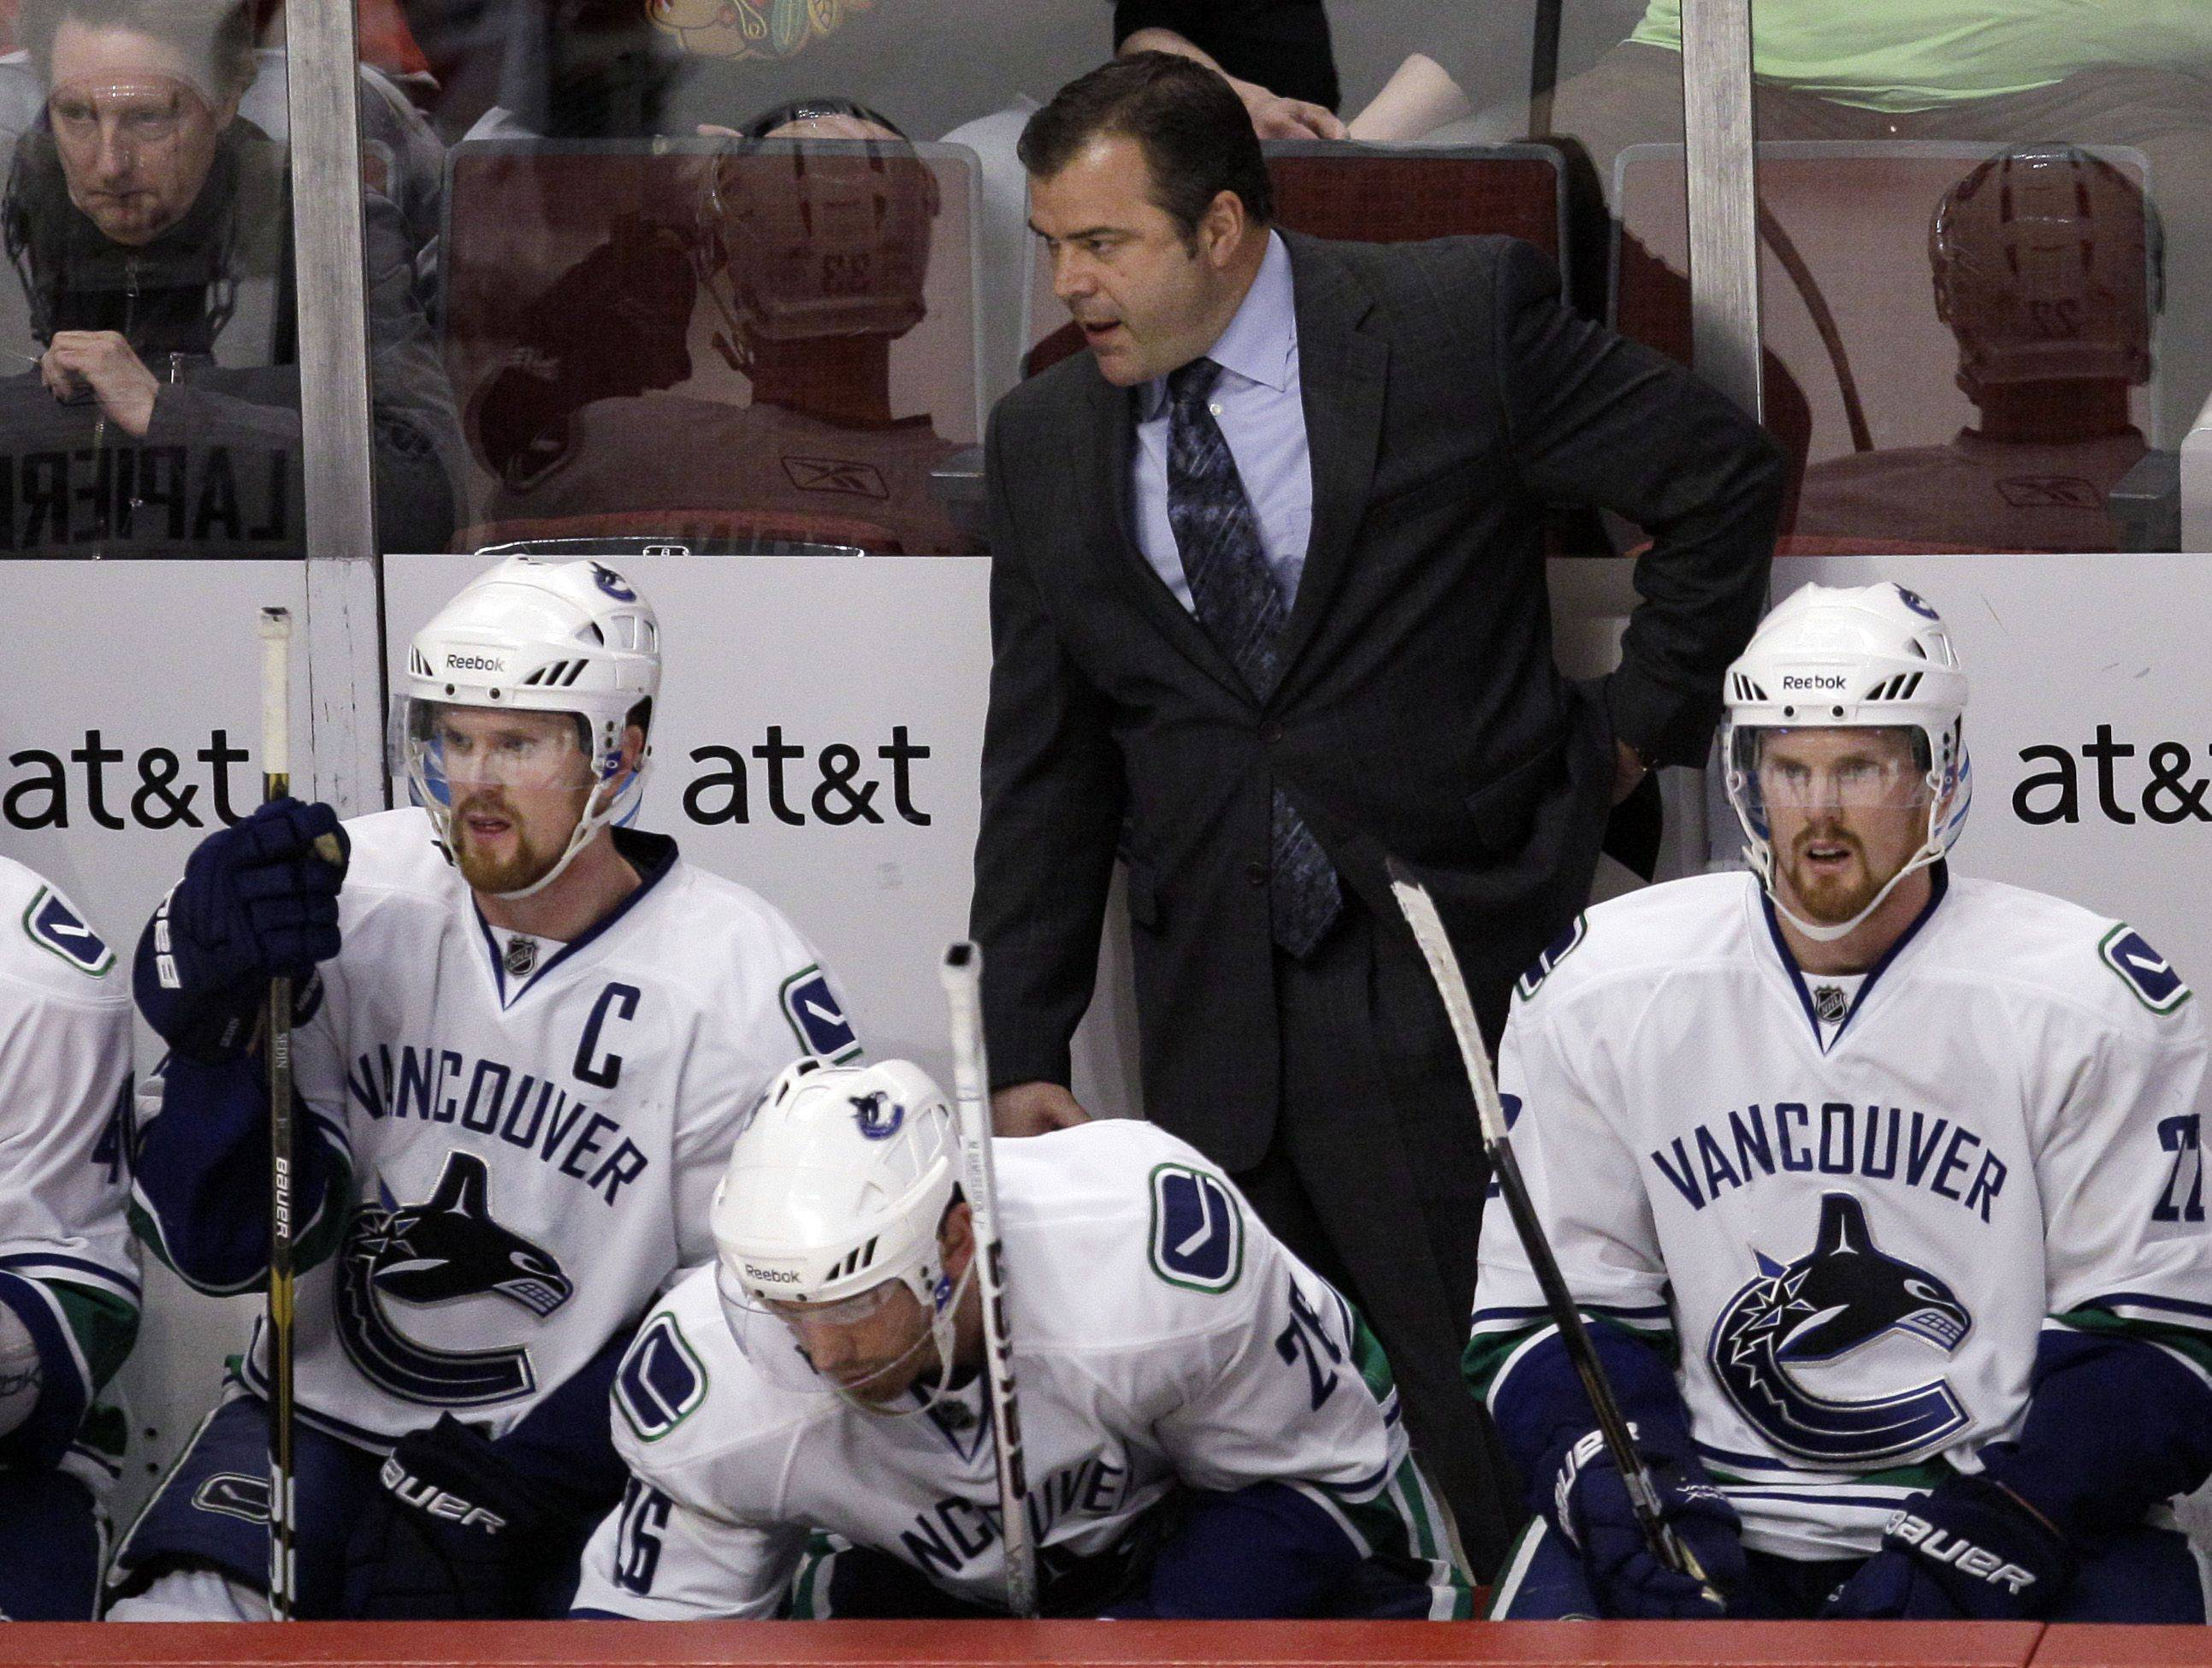 Vancouver Canucks head coach Alain Vigneault watches his team play against the Chicago Blackhawks during the overtime period.